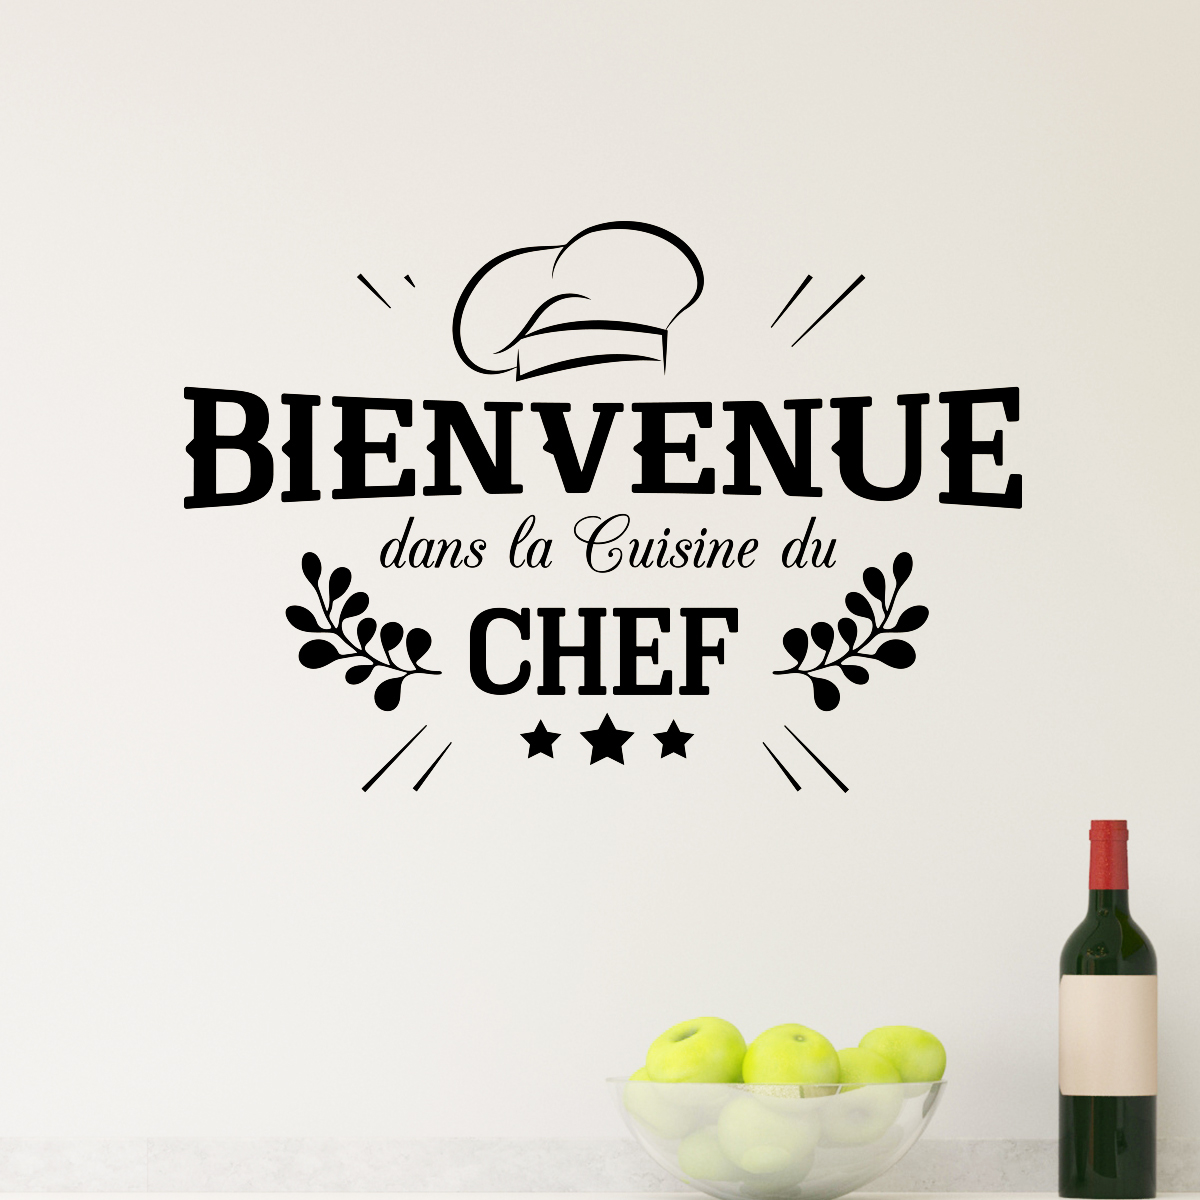 Sticker bienvenue cuisine du chef stickers cuisine for Stickers cuisine design